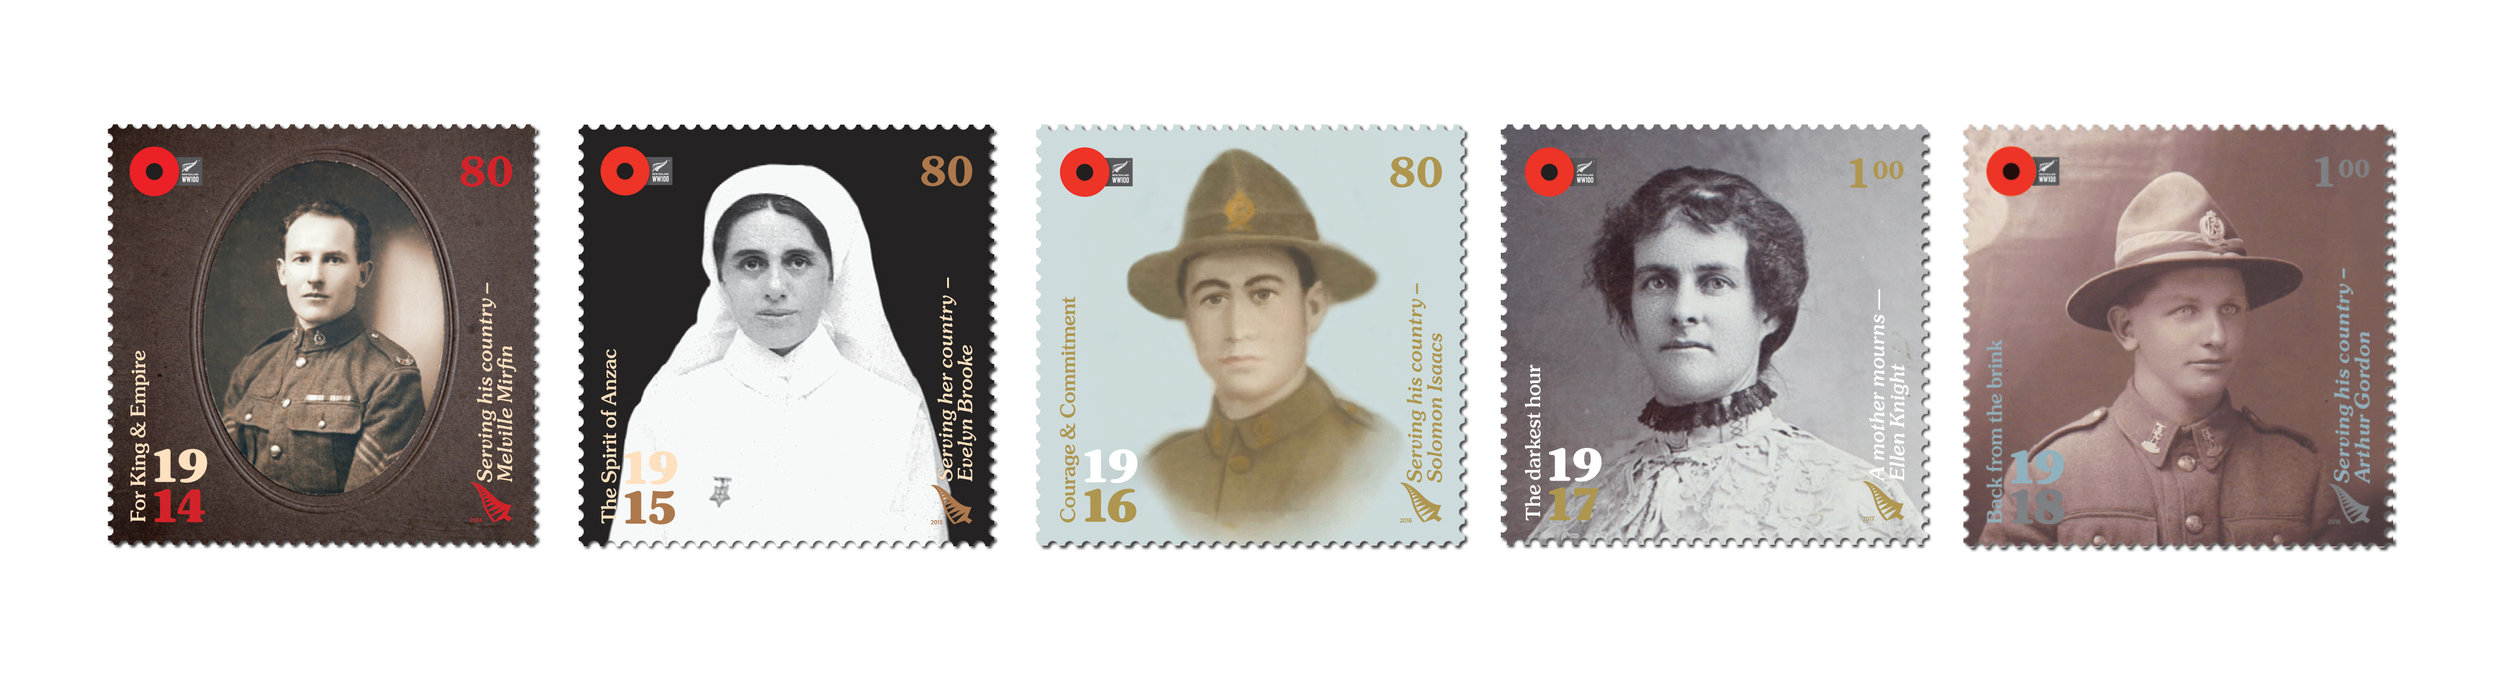 5yearWW1stamps.jpg